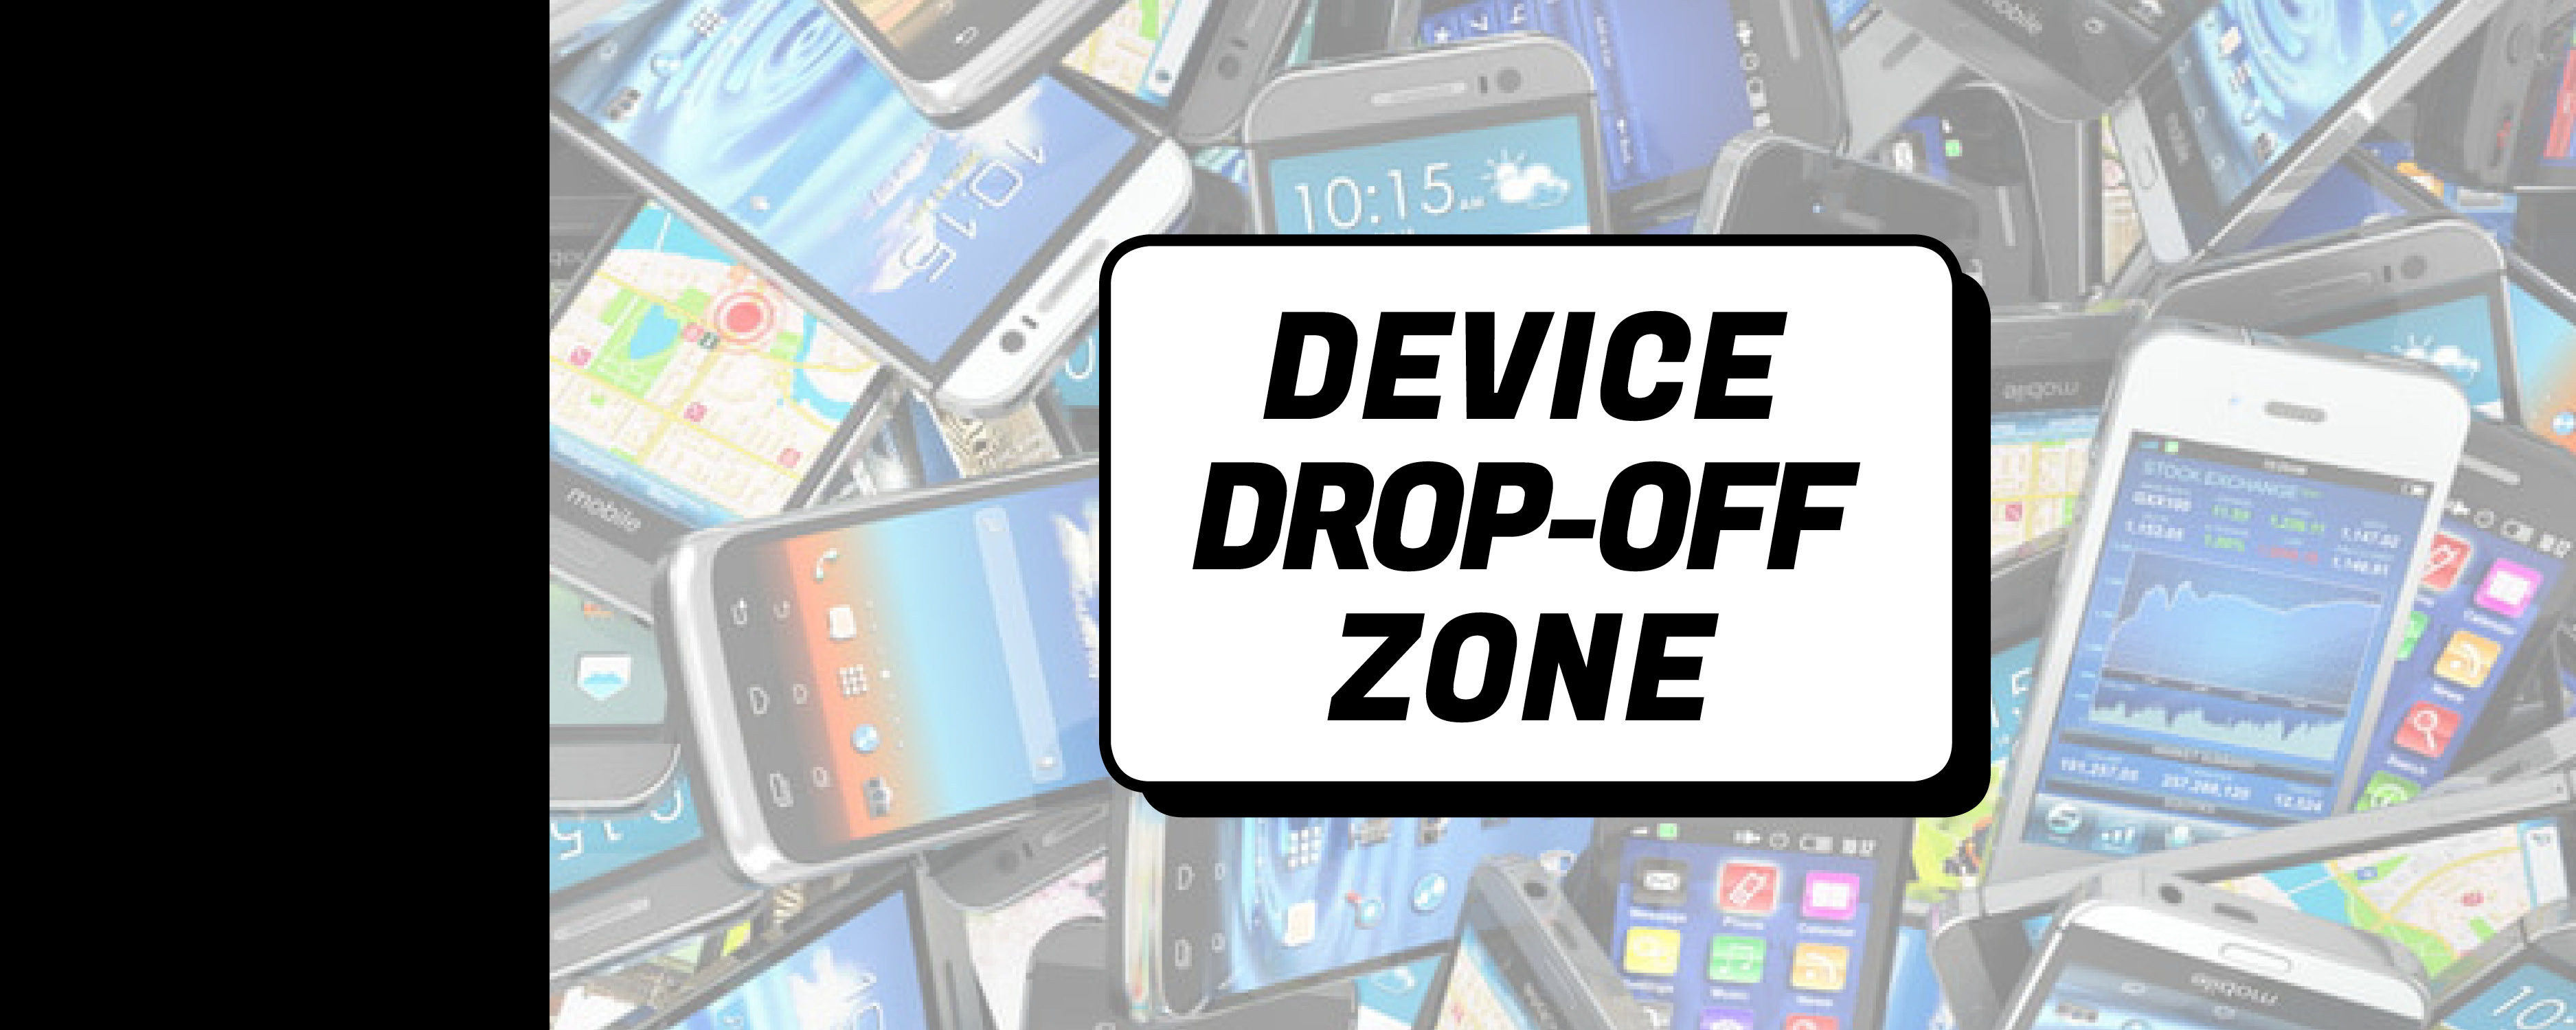 Device Drop-Off Zone